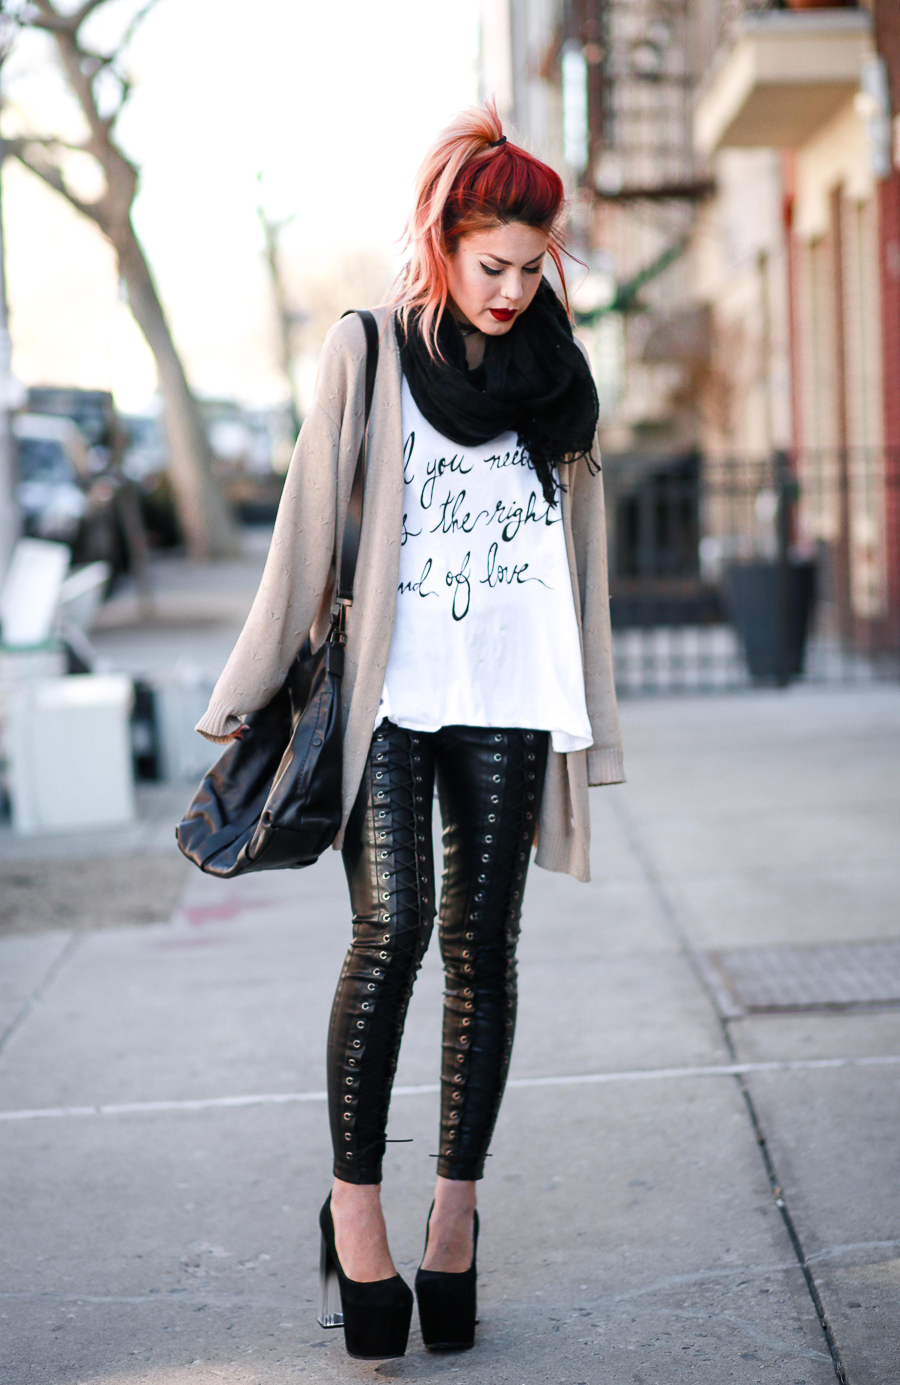 Le Happy wearing Jac Vanek tee and Line and Dot leggings